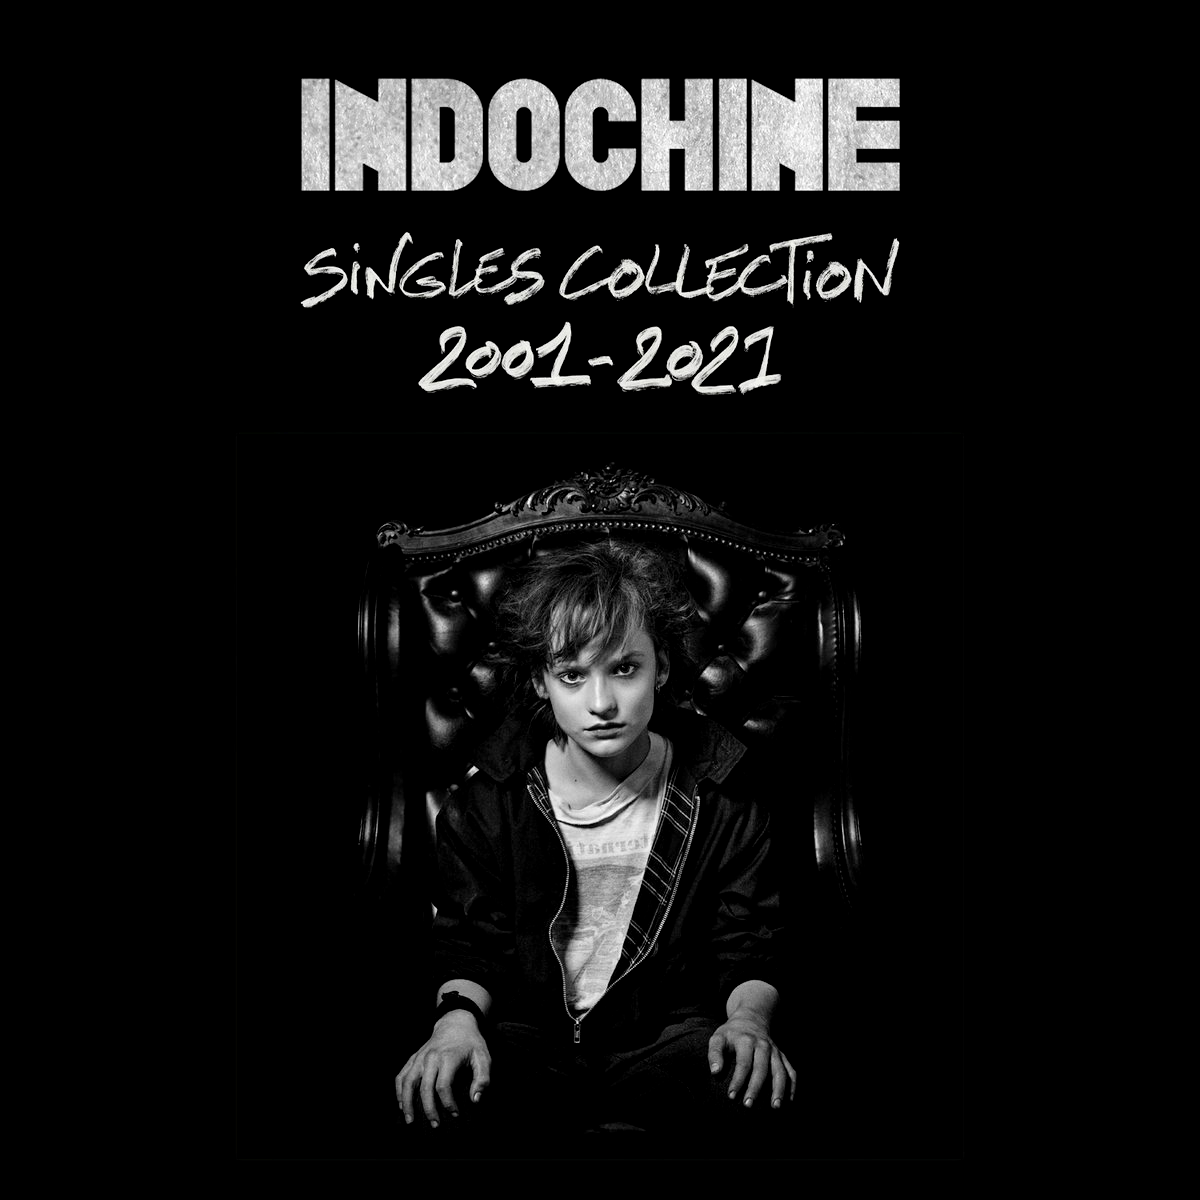 INDOCHINE: Singles collection 2001-2021 [Edition Deluxe]